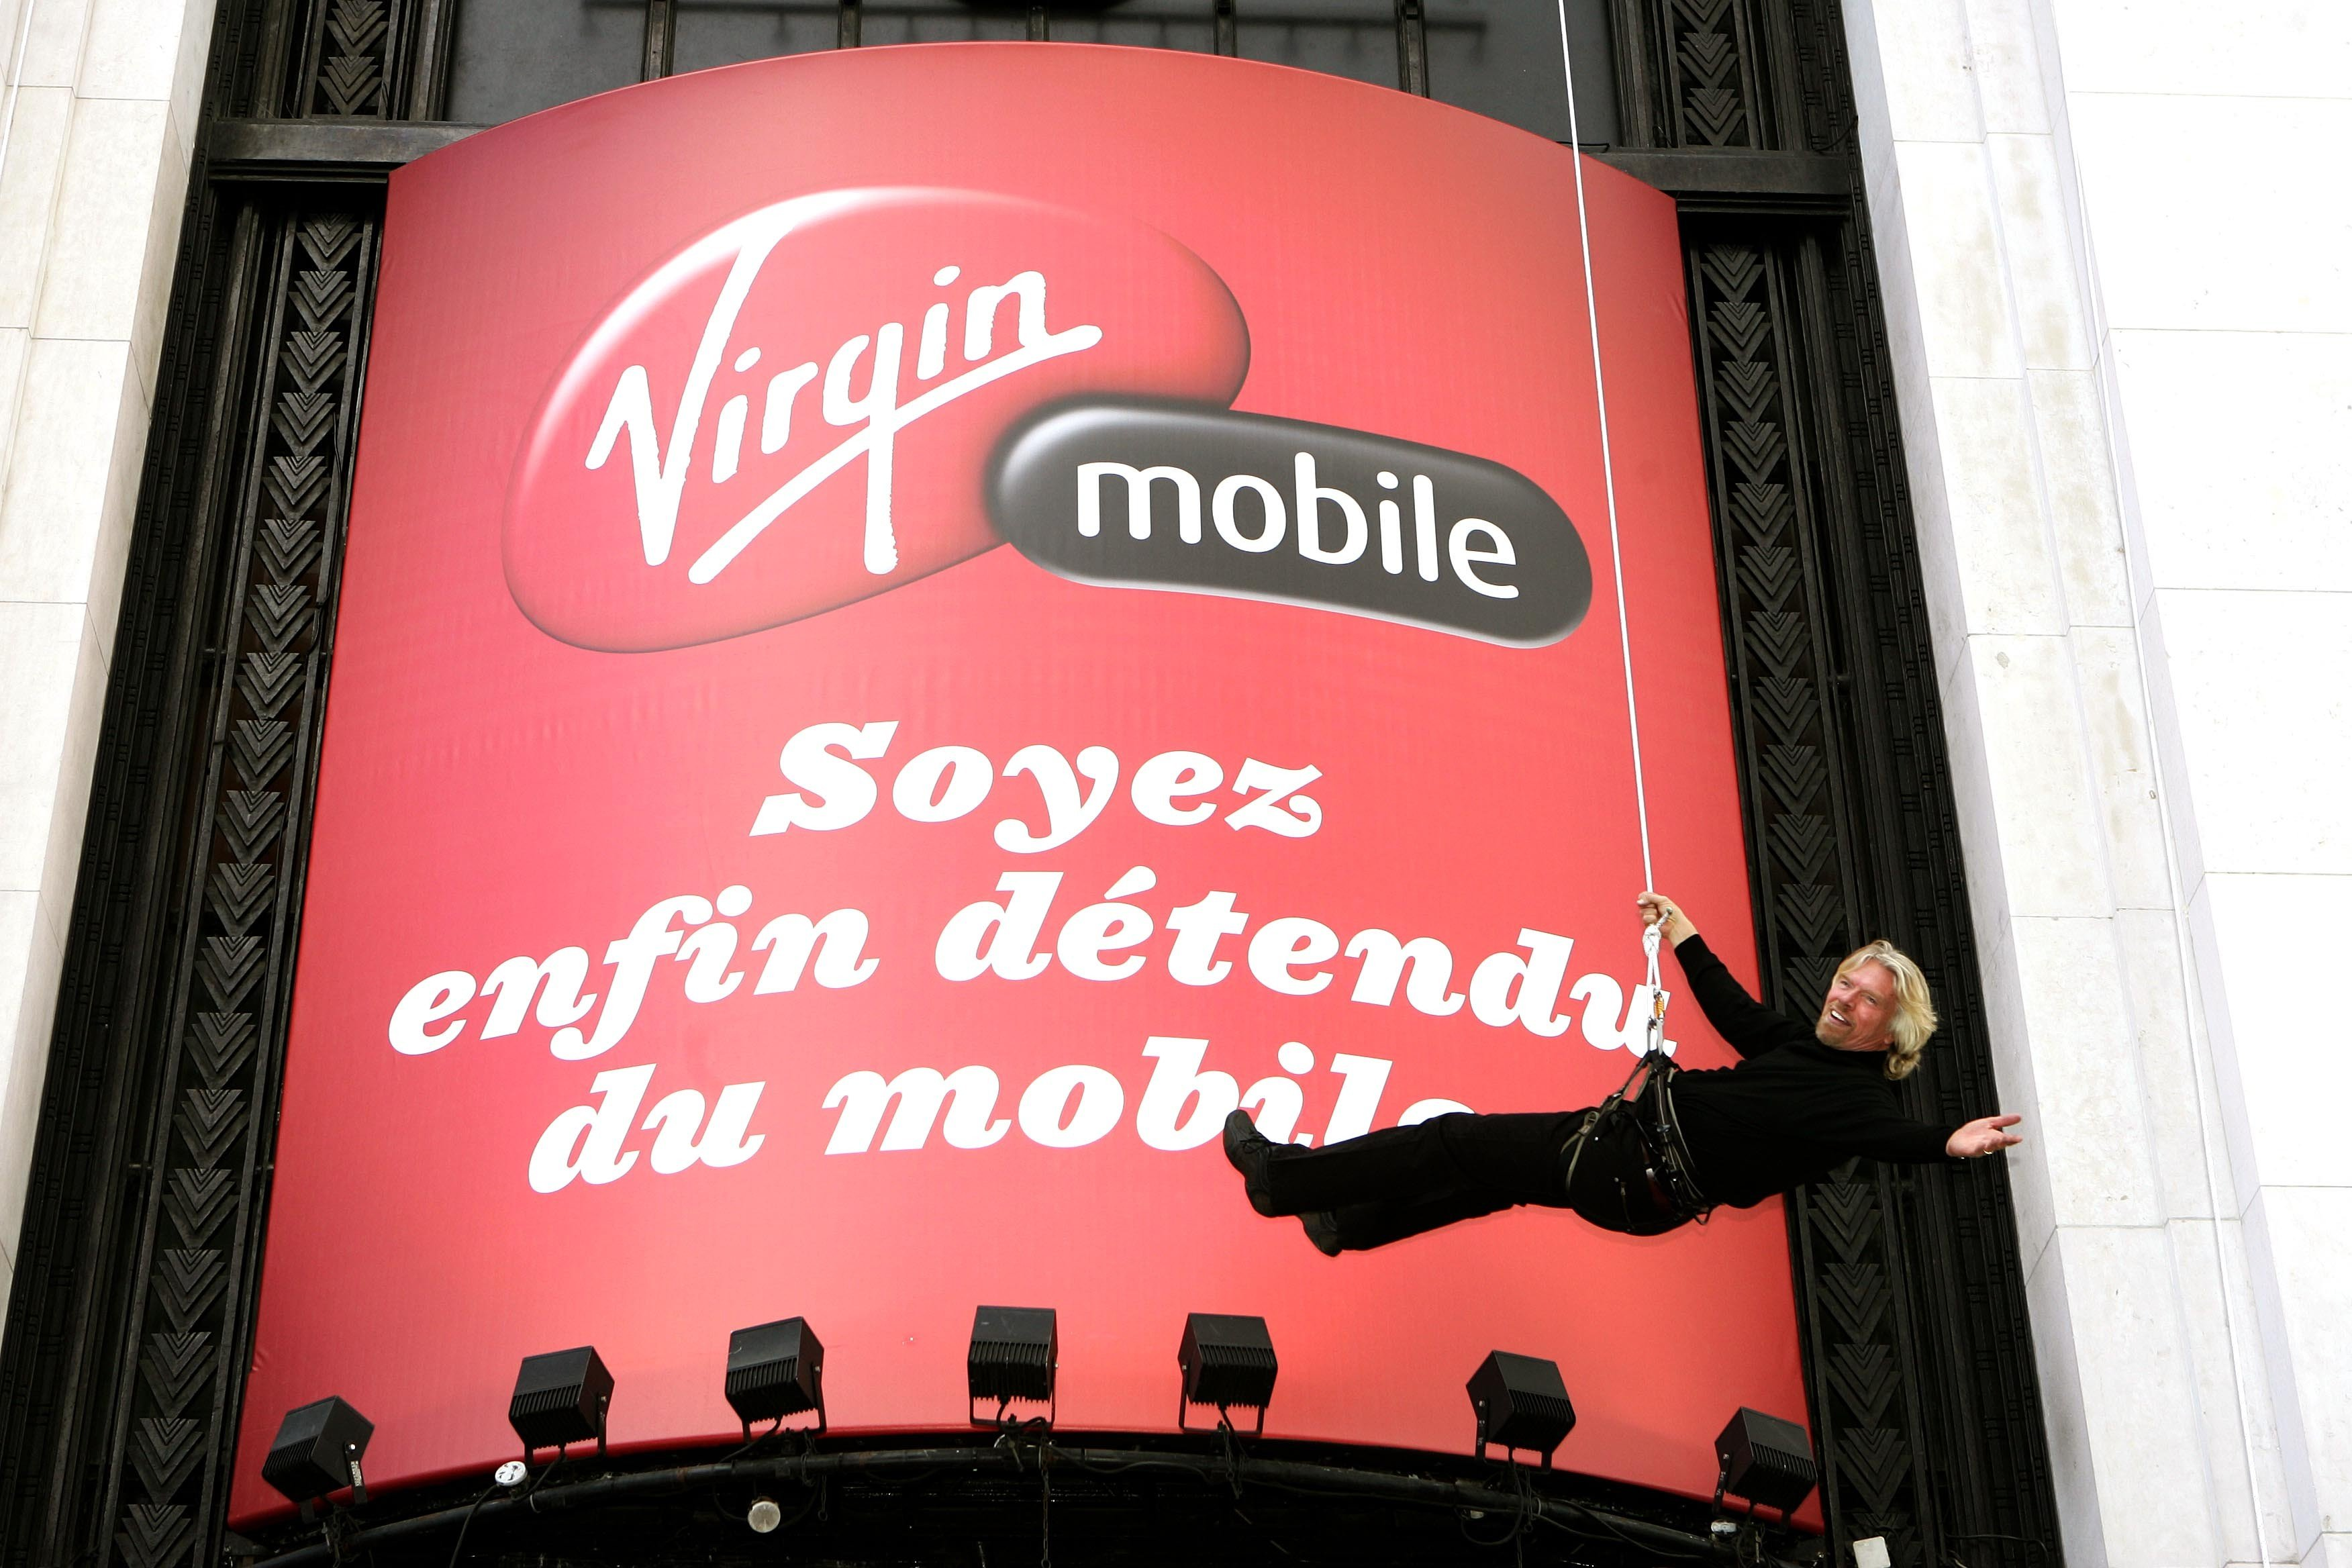 Richard Branson launching mobile fr